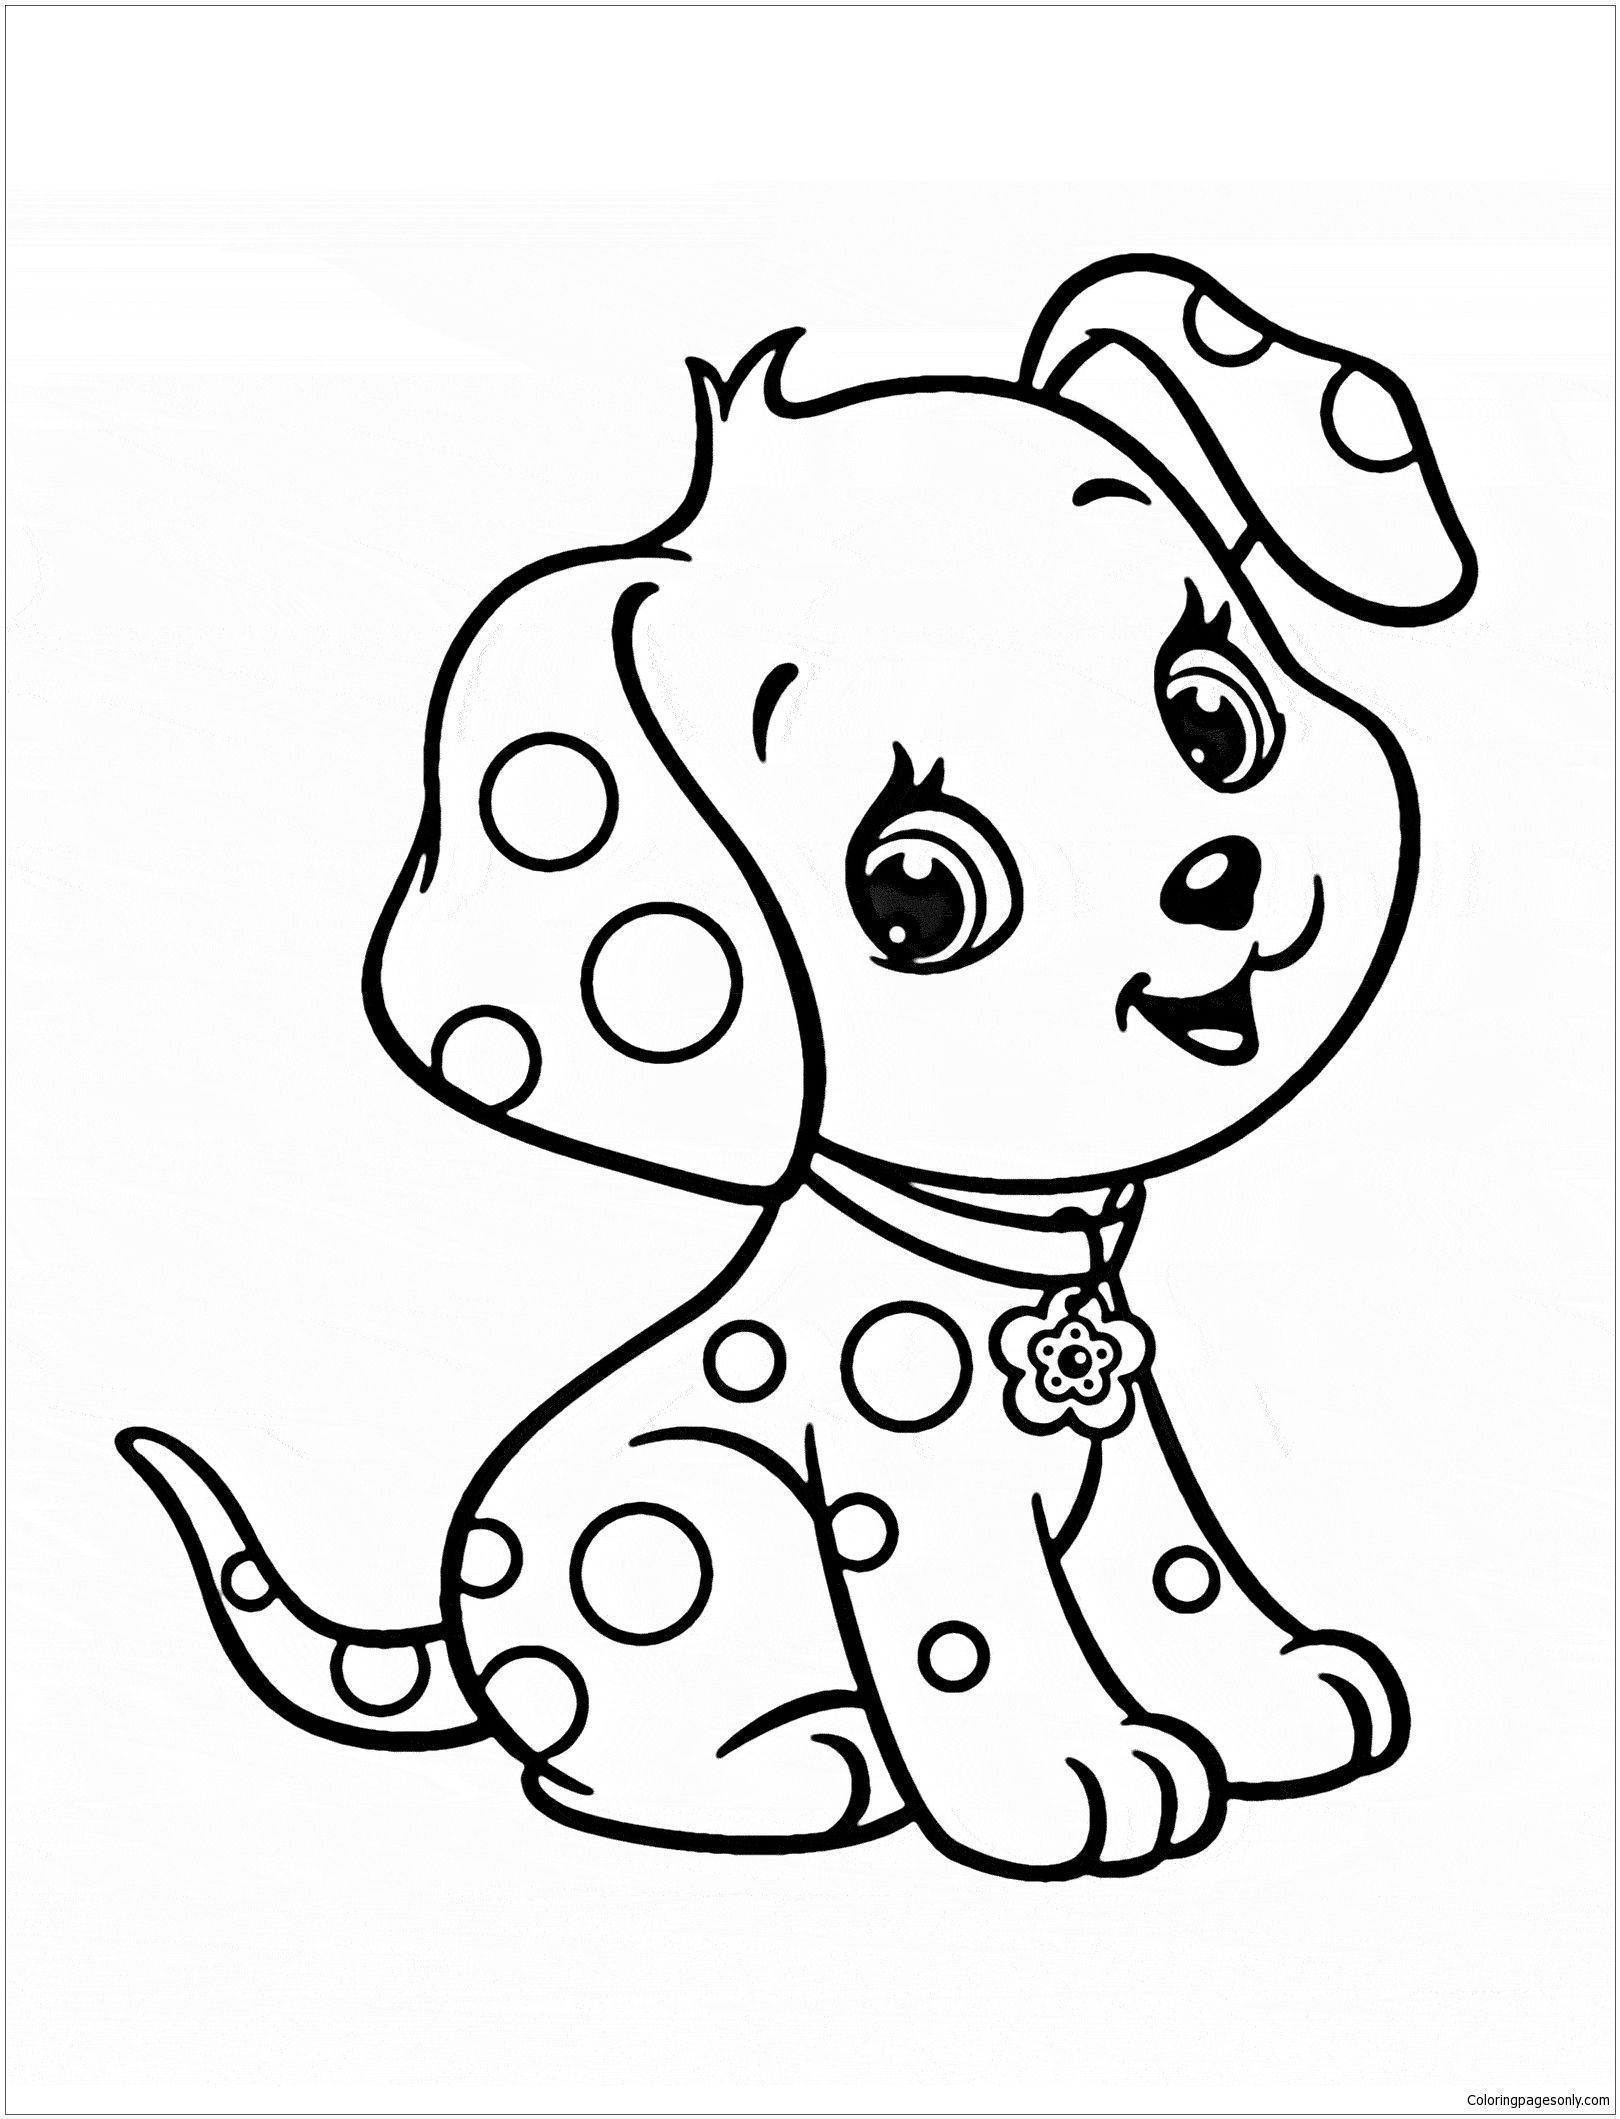 Cute Puppy 5 Coloring Page Puppy Coloring Pages Puppy Coloring